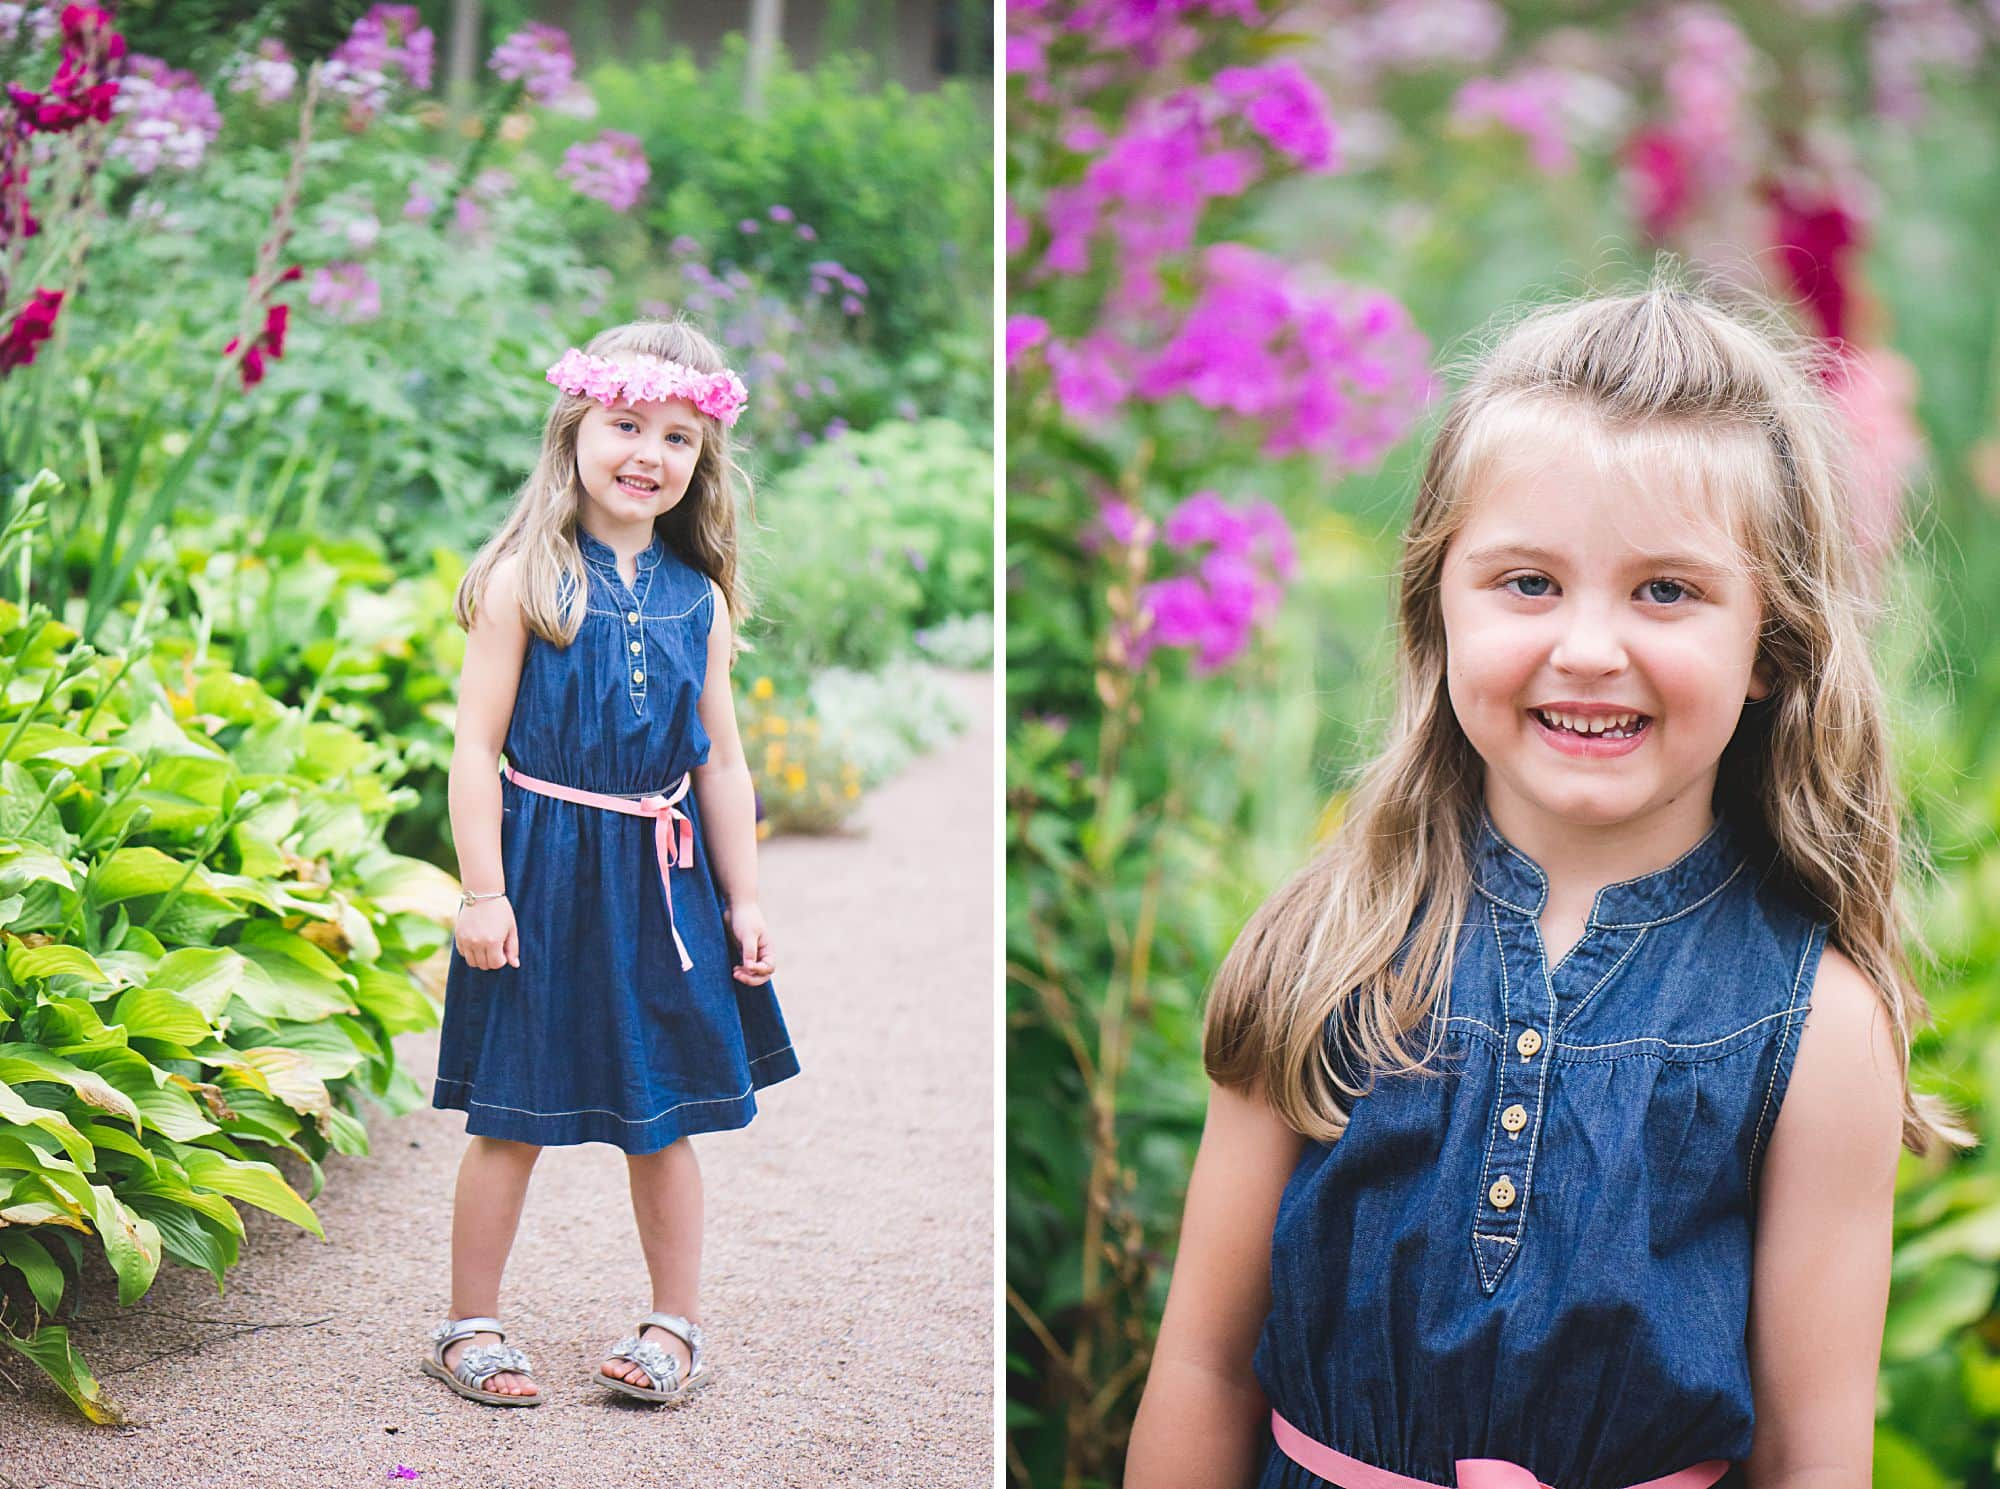 Young girl wearing a blue dress with pink belt outside in a garden in a natural fun pose